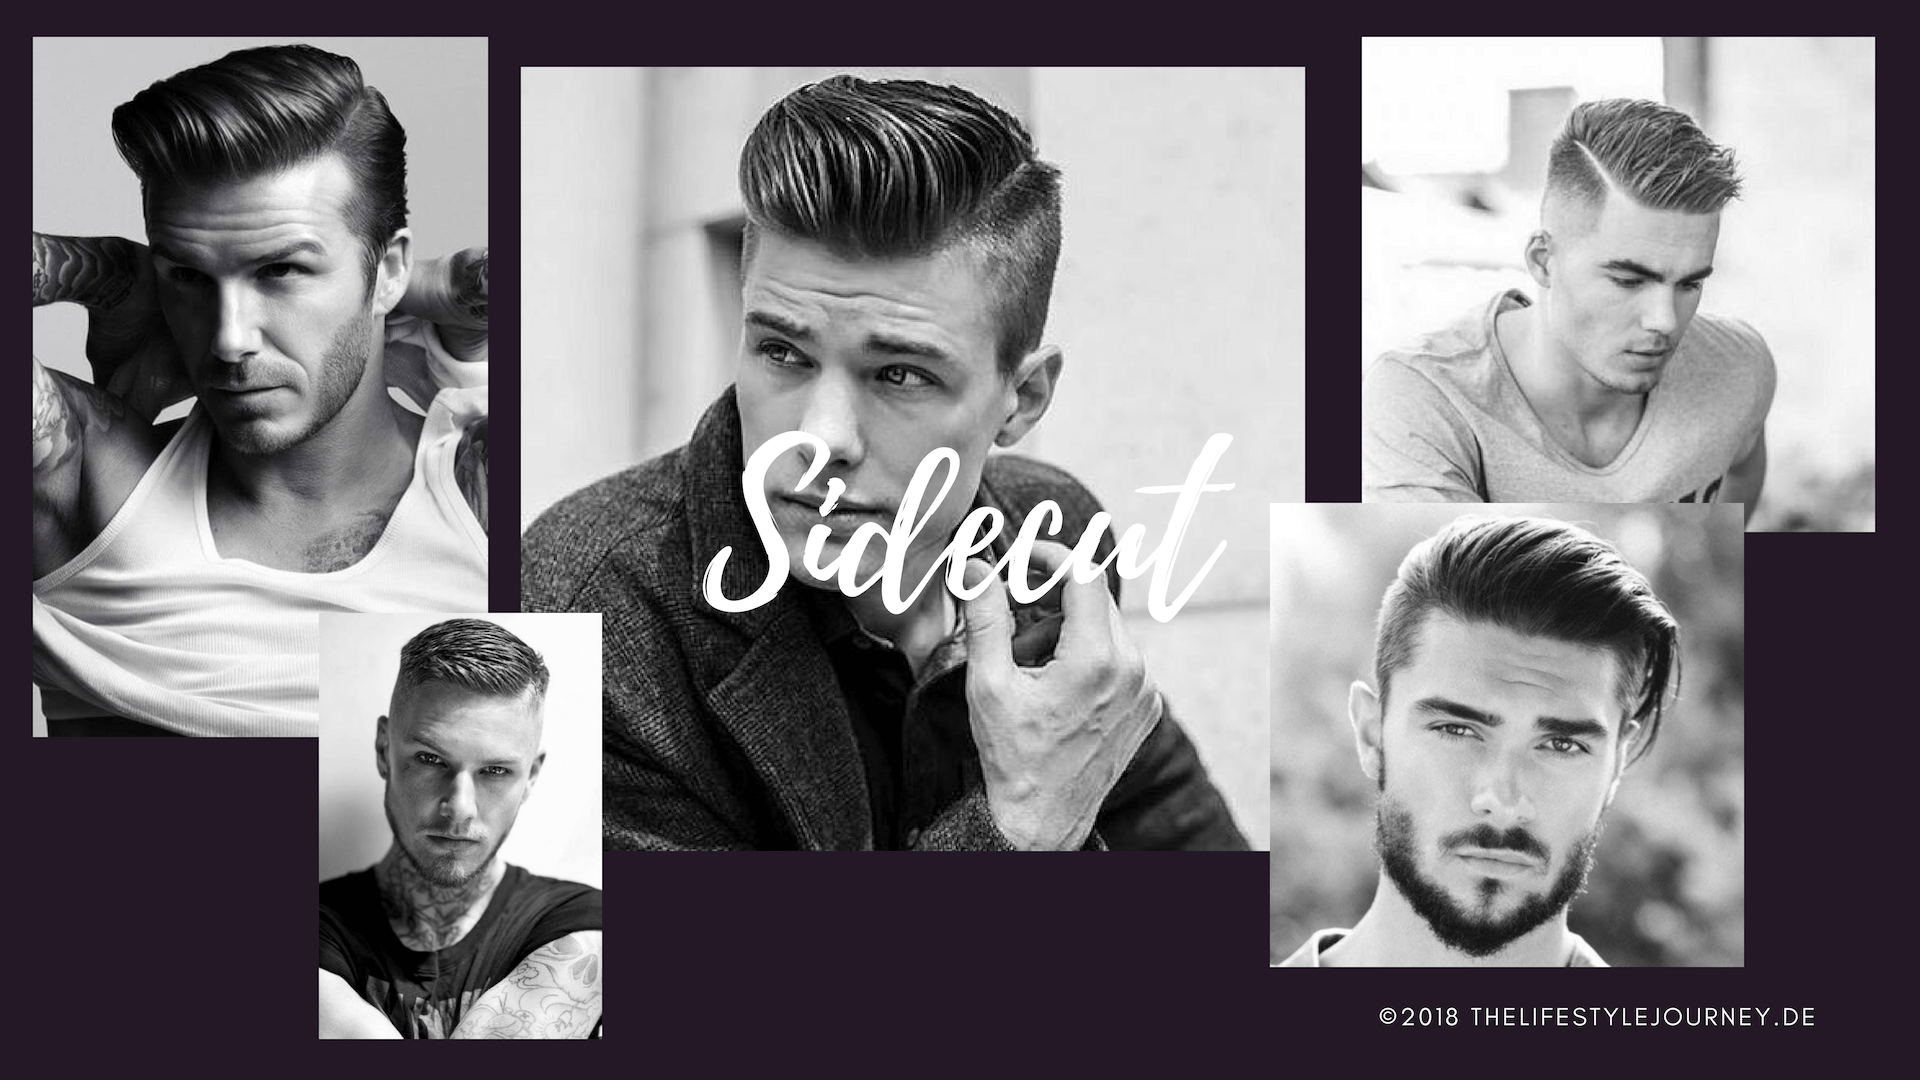 Herren Frisuren 2019 Haartrends Manner Haarschnitte Hairstyles